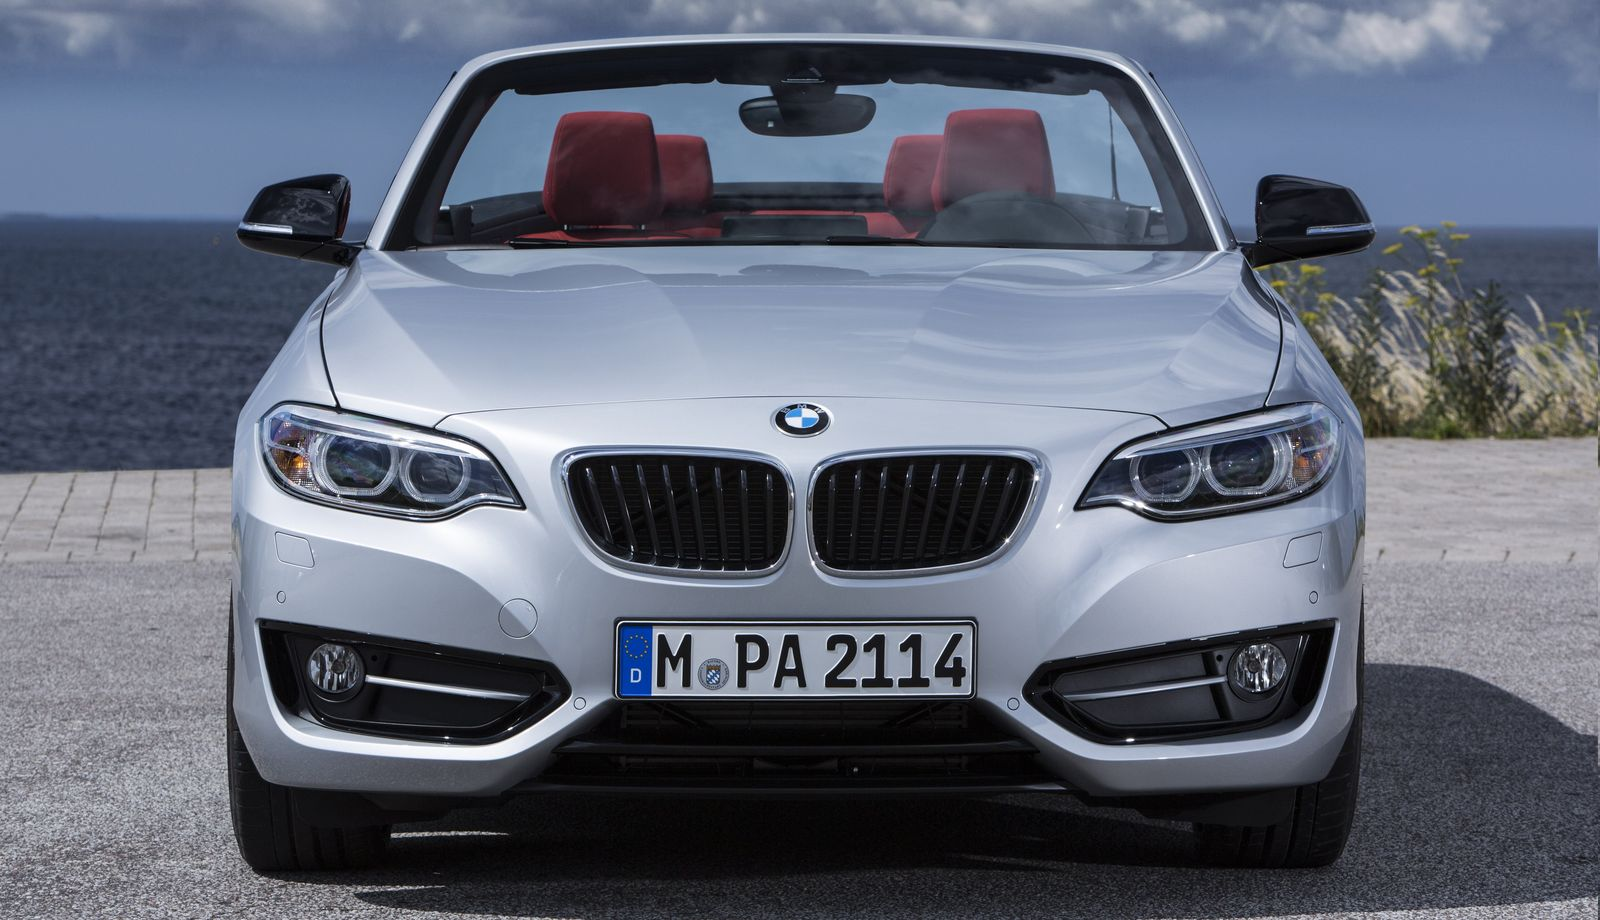 bmw 2 series sizes and dimensions guide carwow. Black Bedroom Furniture Sets. Home Design Ideas